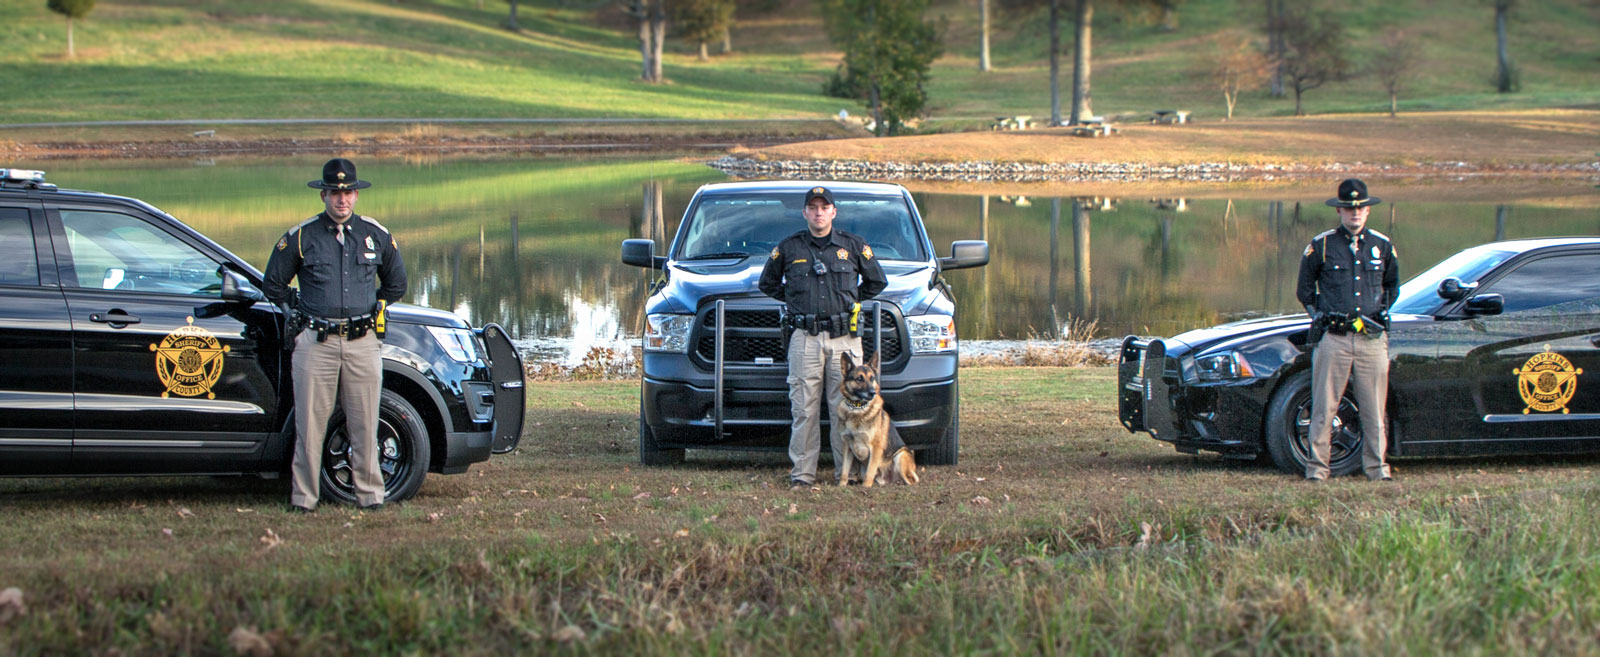 Photo with Vehicles, officers, and a k9